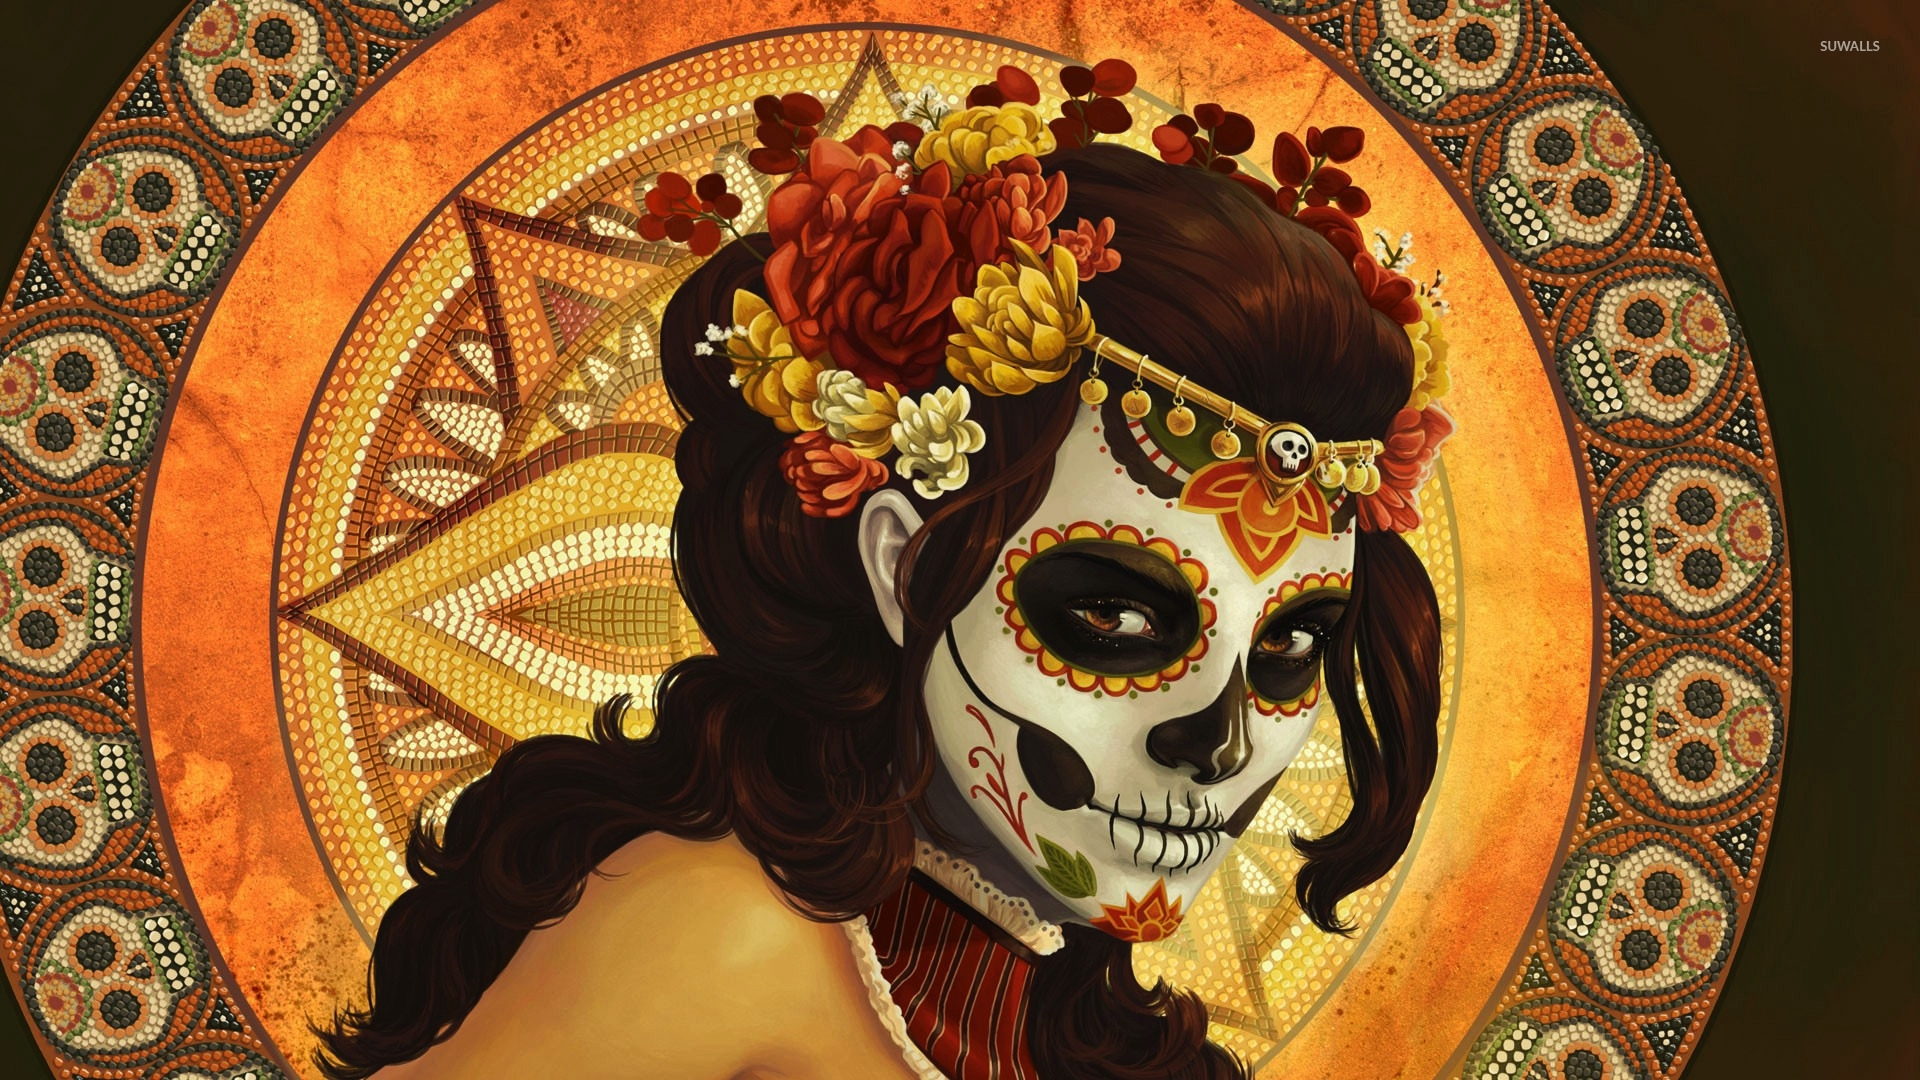 day of the dead mask wallpaper - fantasy wallpapers - #16284